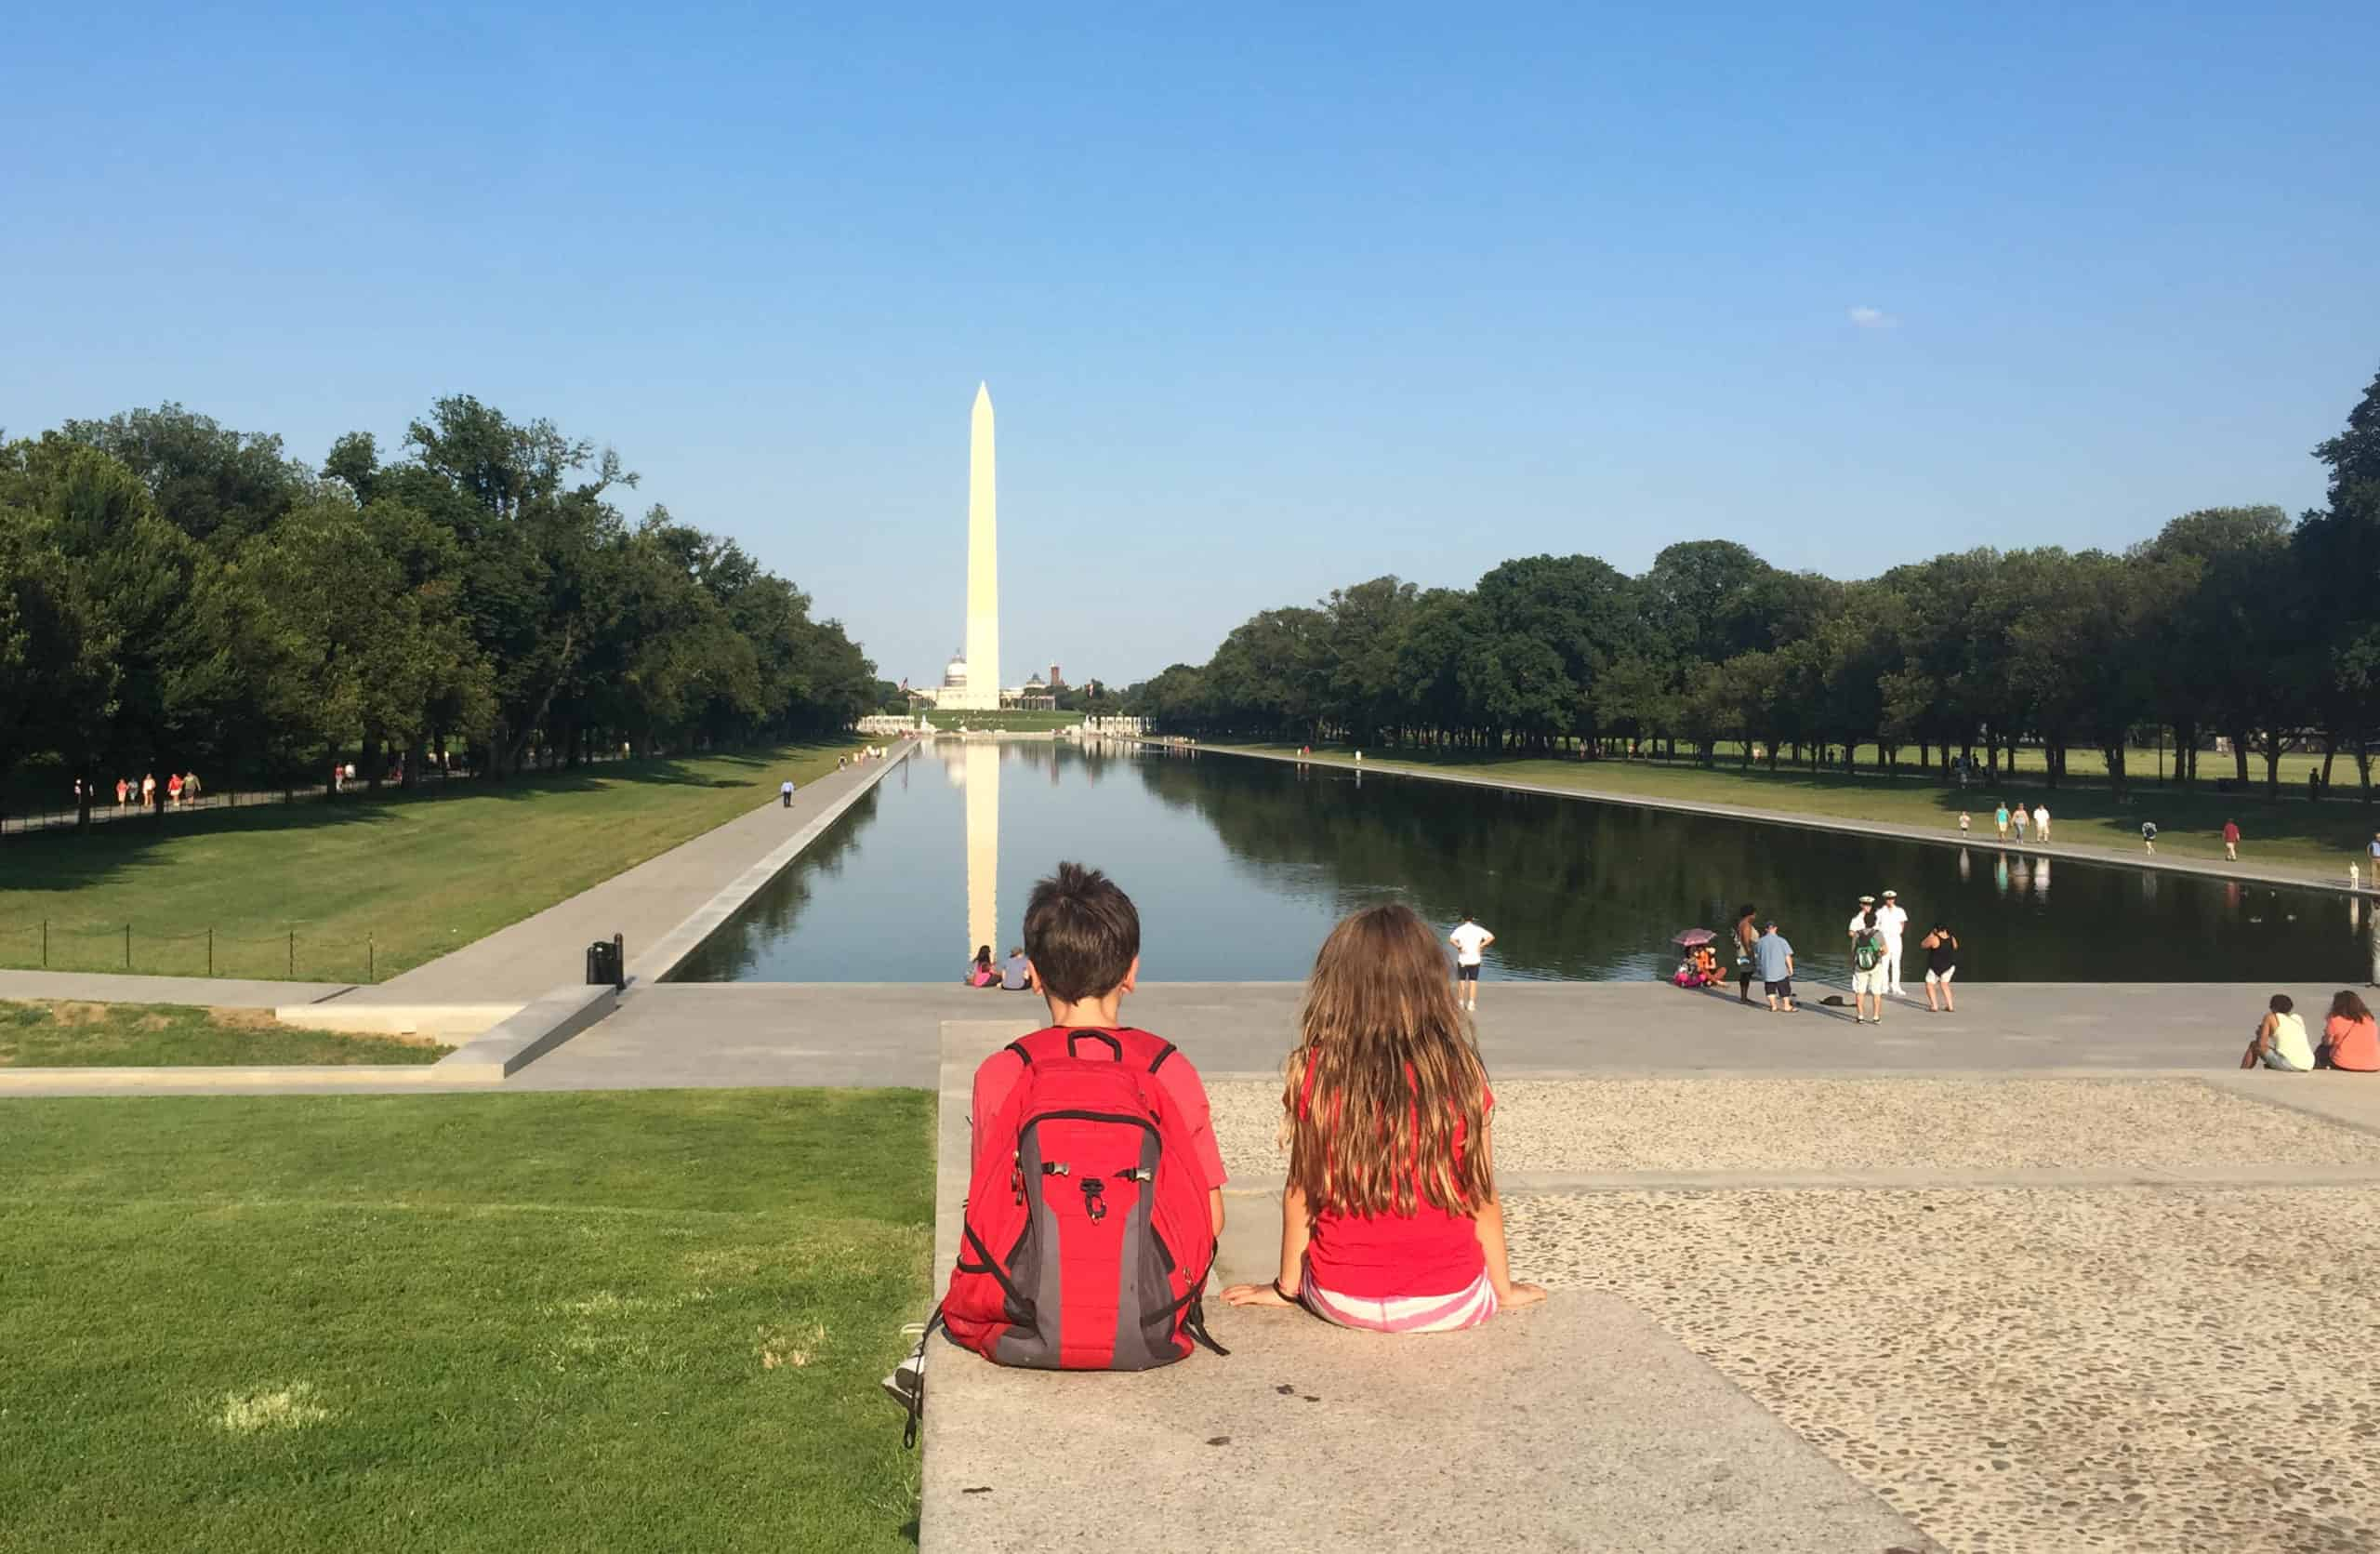 National Mall and Memorial Parks in D.C.